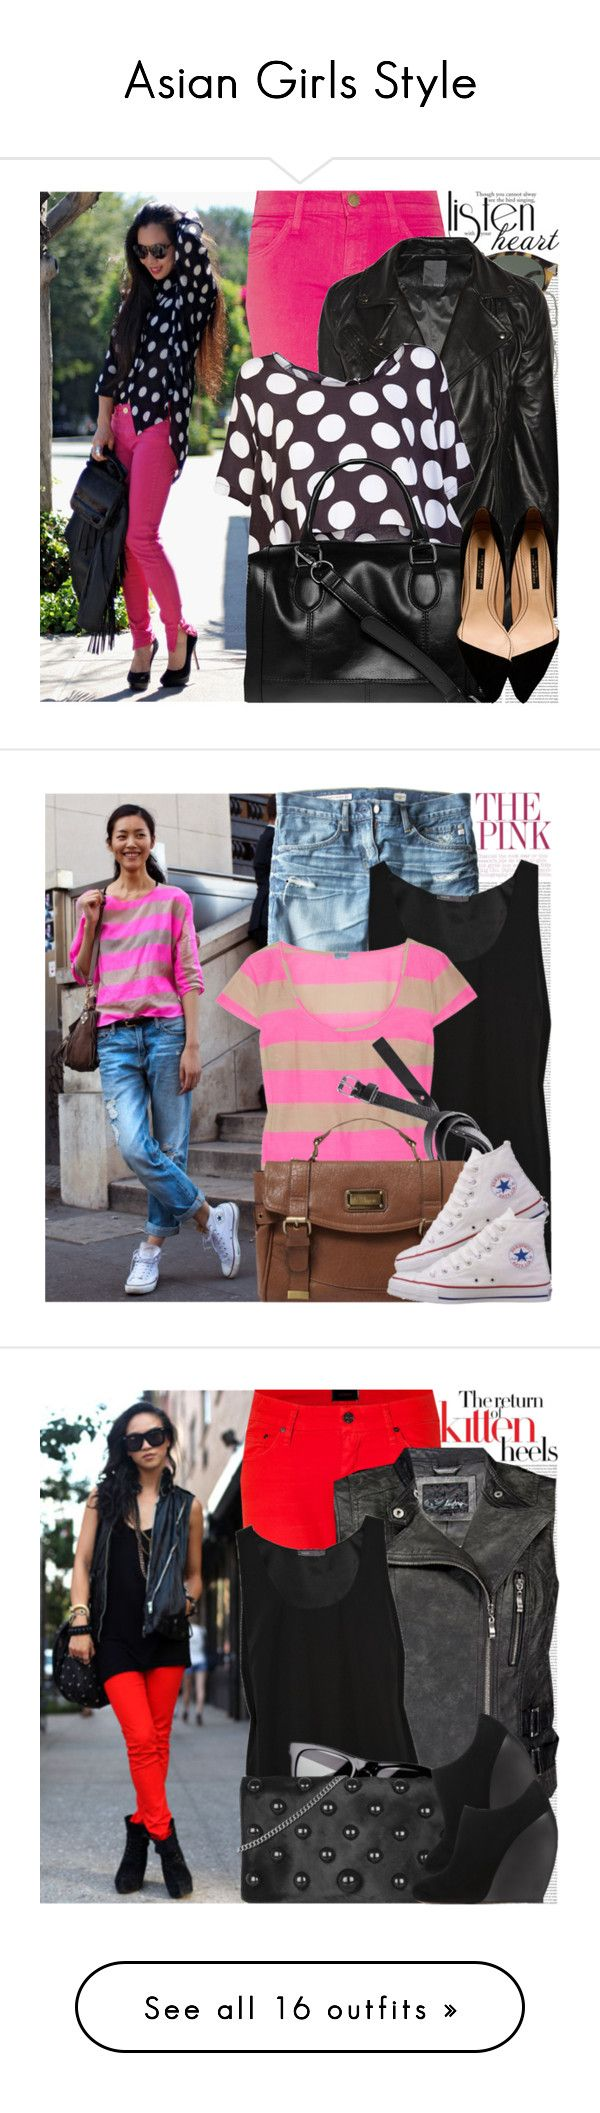 """""""Asian Girls Style"""" by amber-nicki-rose ❤ liked on Polyvore featuring Oris, Pablo, Karen Walker, Current/Elliott, Lot78, Otis & Maclain, Zara, Dorothy Perkins, AG Adriano Goldschmied and Vince"""